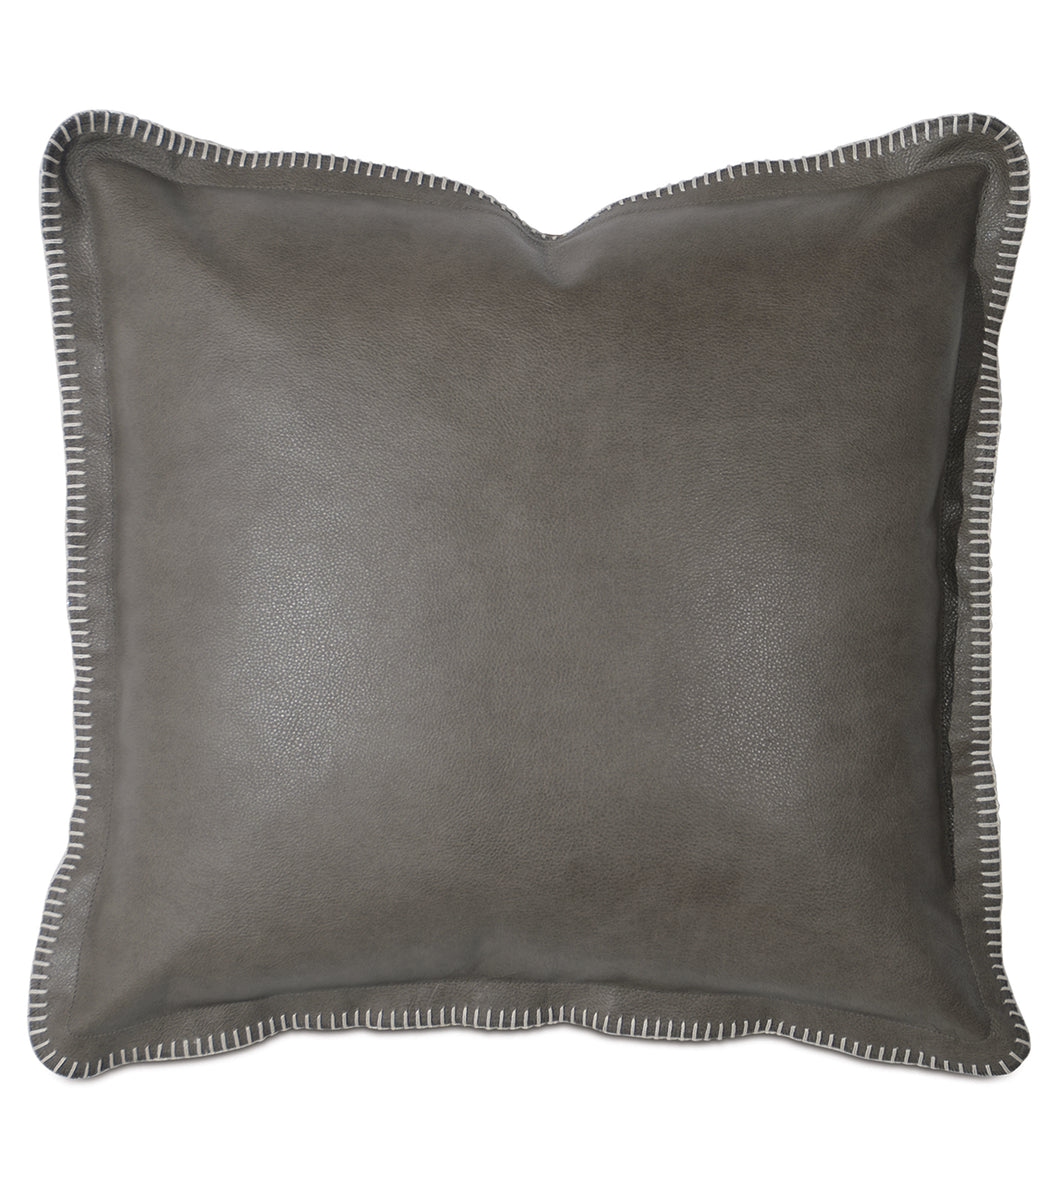 Telluride Blanket Stitch Decorative Accent Pillow In Cowhide Leather 2 Rustic Lodge Collection